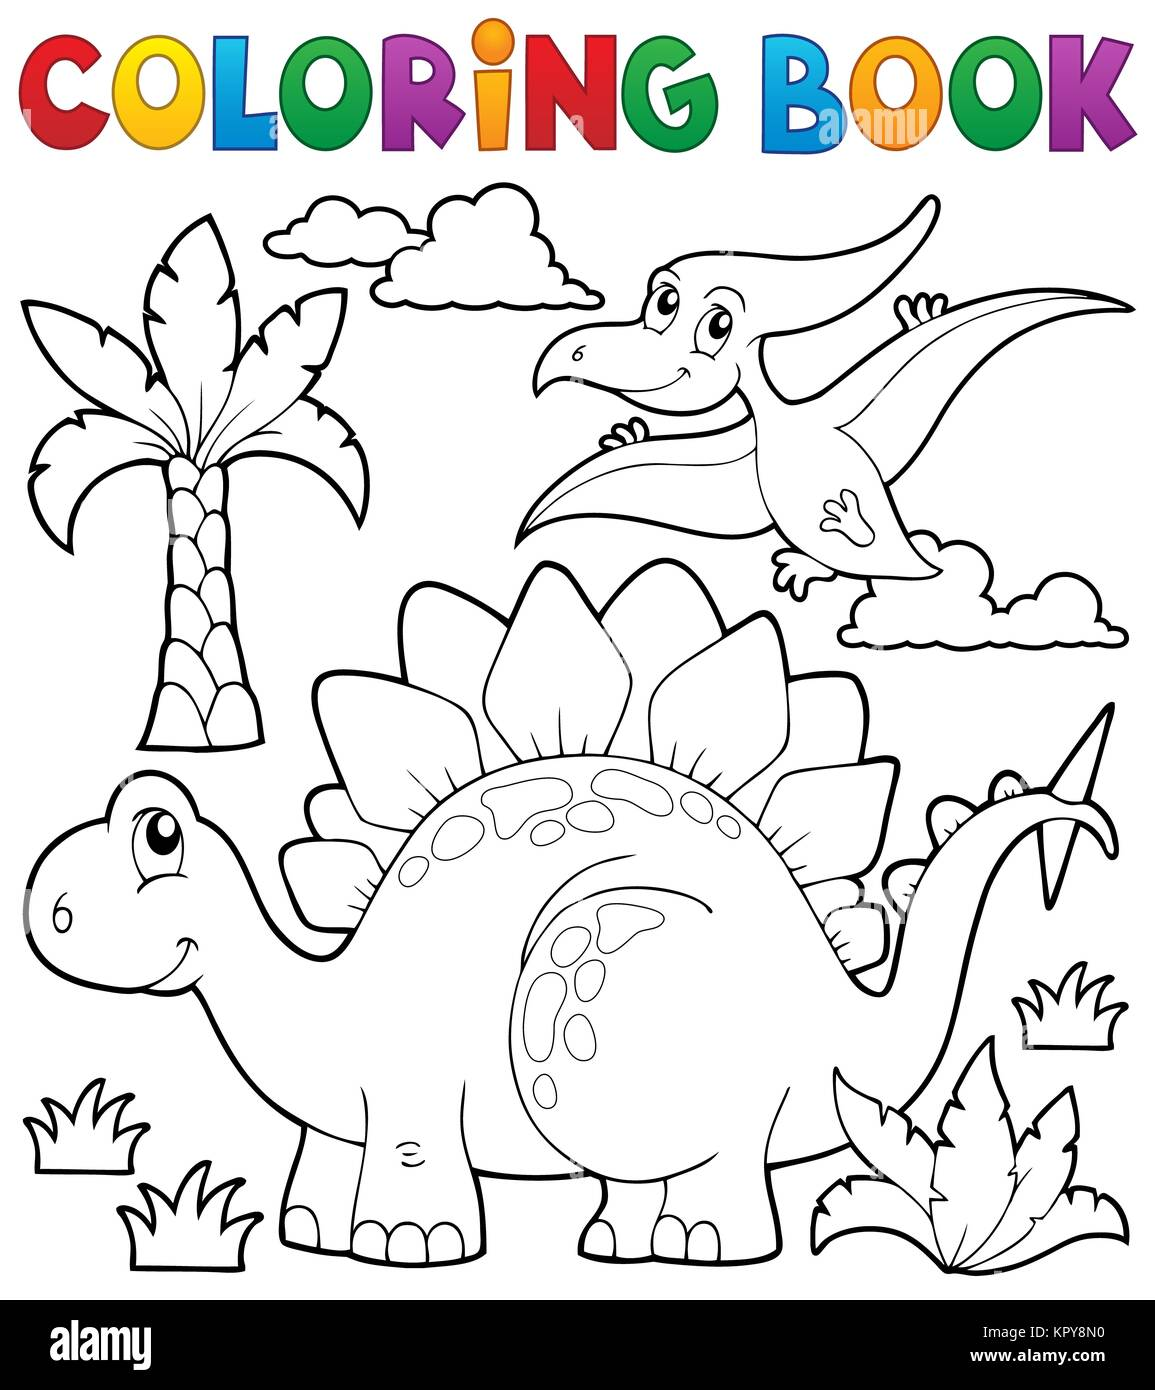 Coloring book dinosaur theme 1 - Stock Image